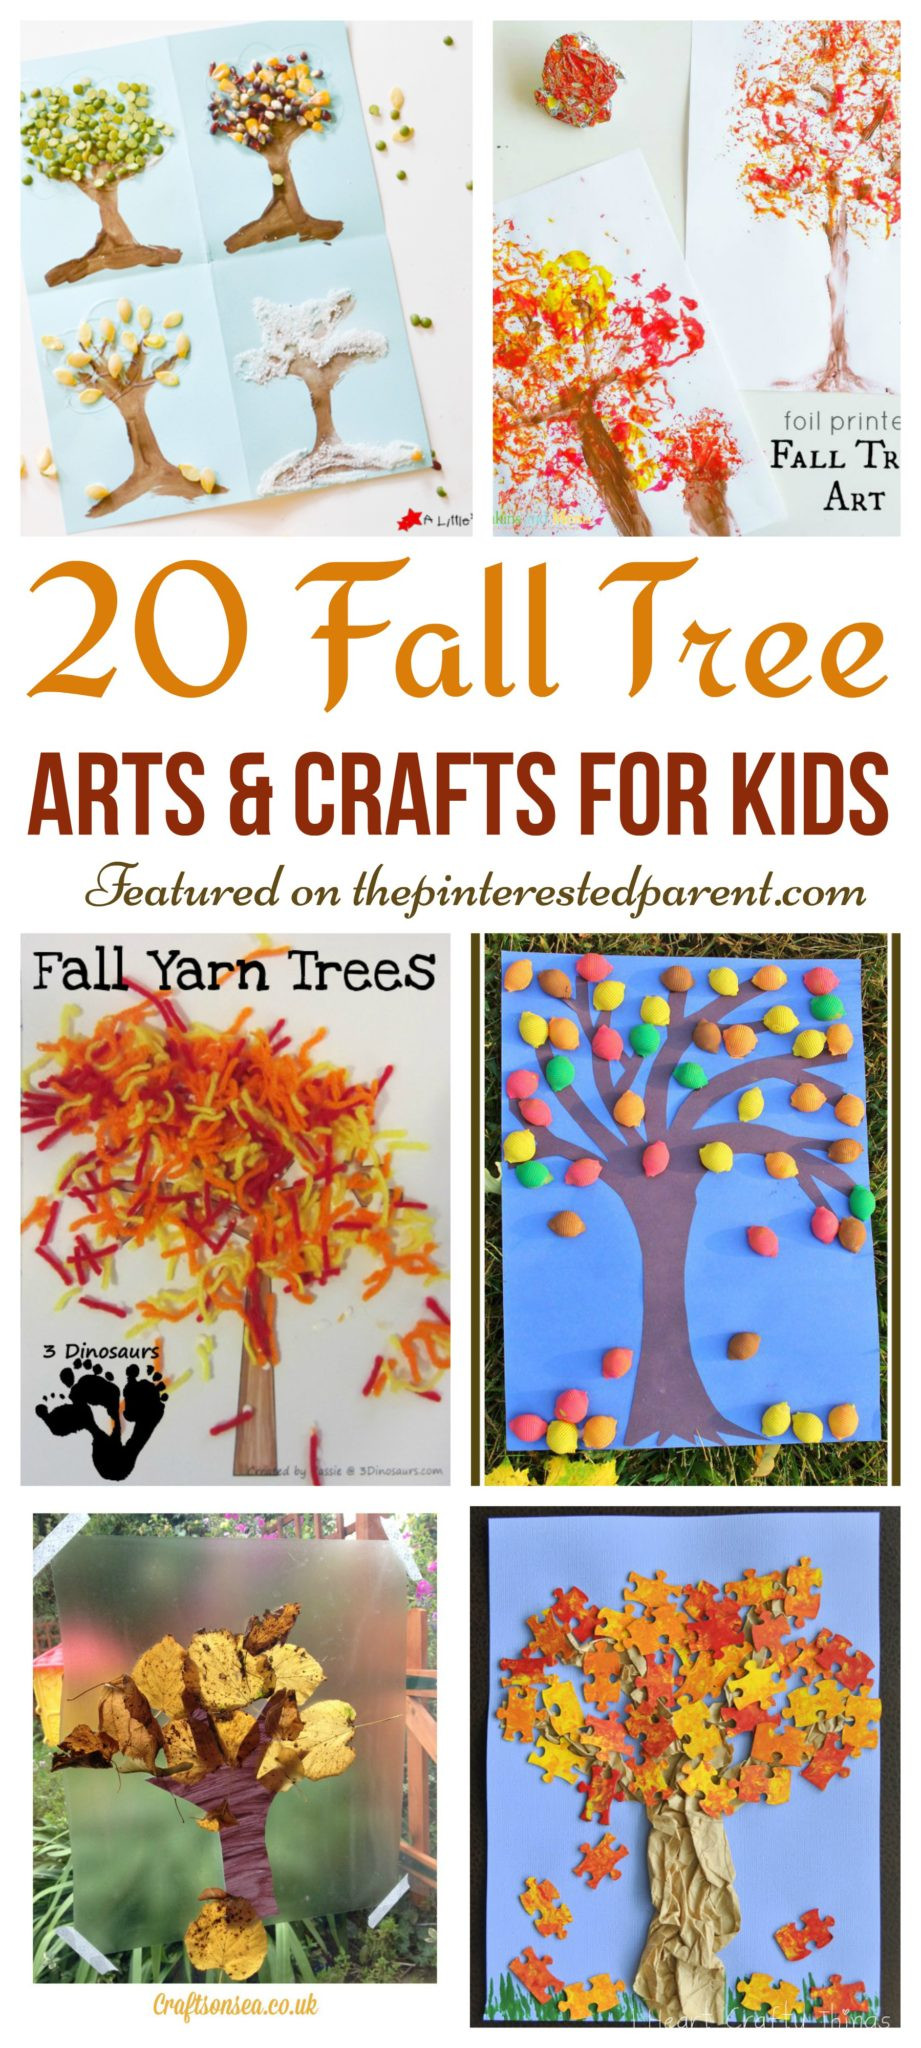 Fall Toddler Craft Ideas  20 Fall Tree Arts & Crafts Ideas For Kids – The